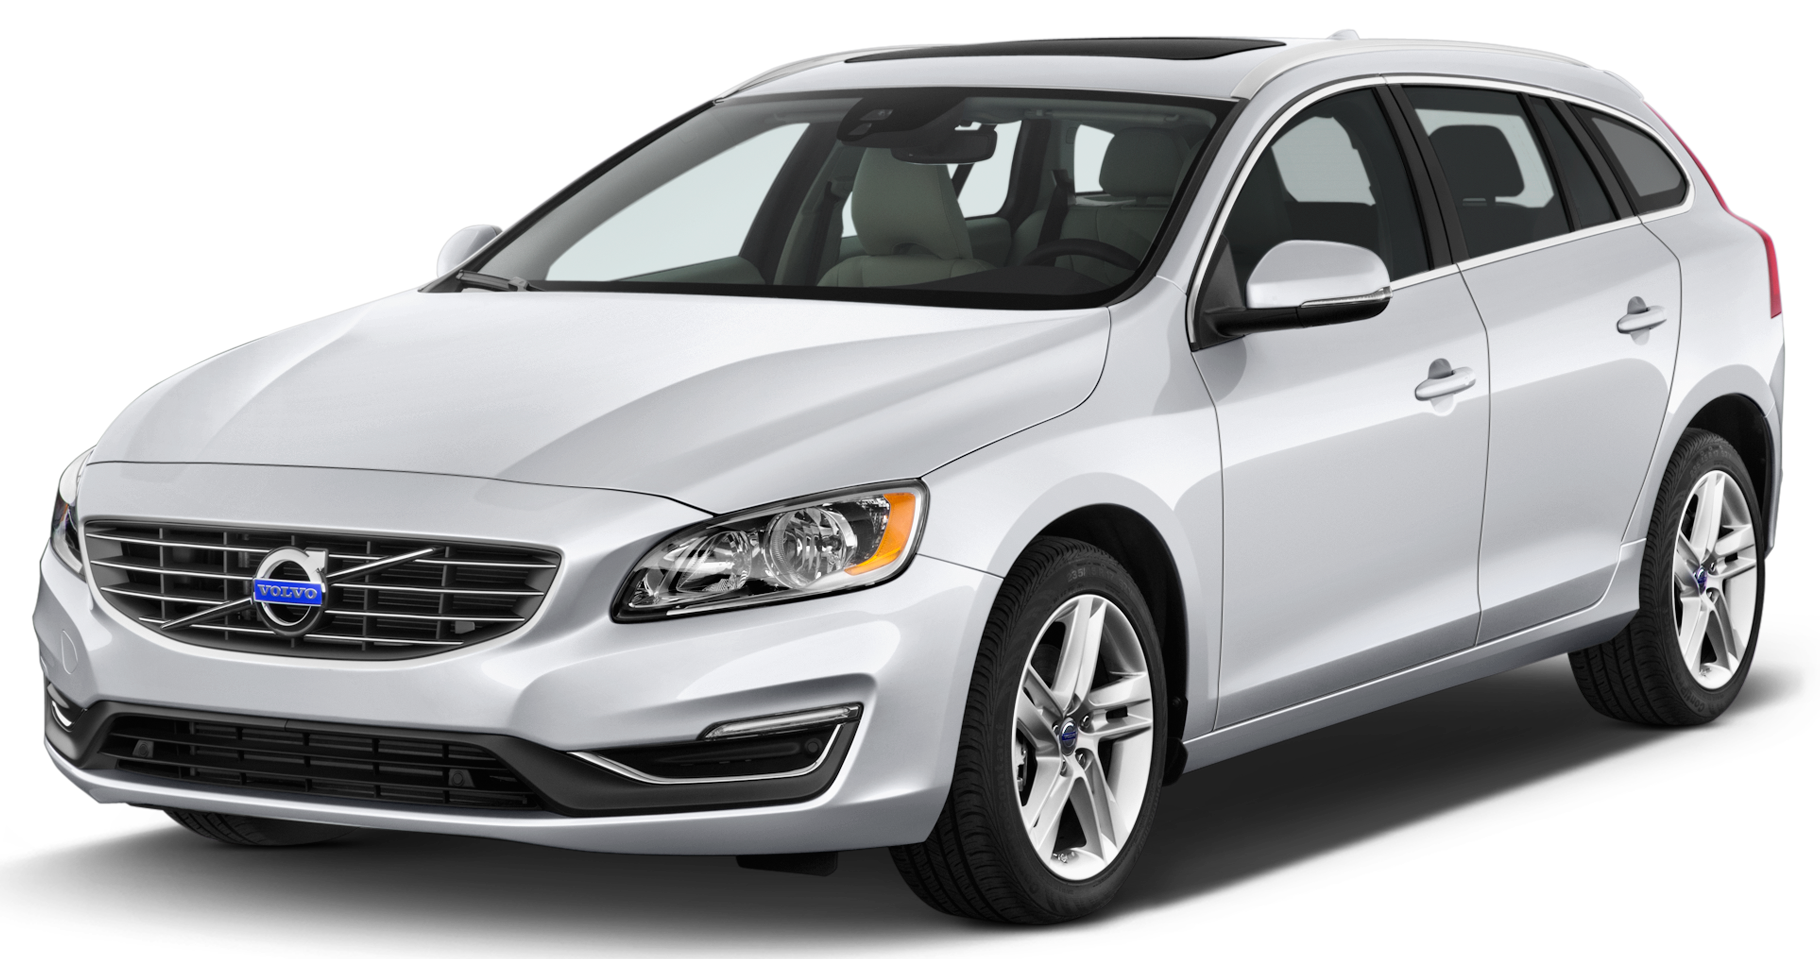 brooklyn autoleasing offers coupons show lease easter specials deals lehew hybrid carnival volvo incentives in statenisland